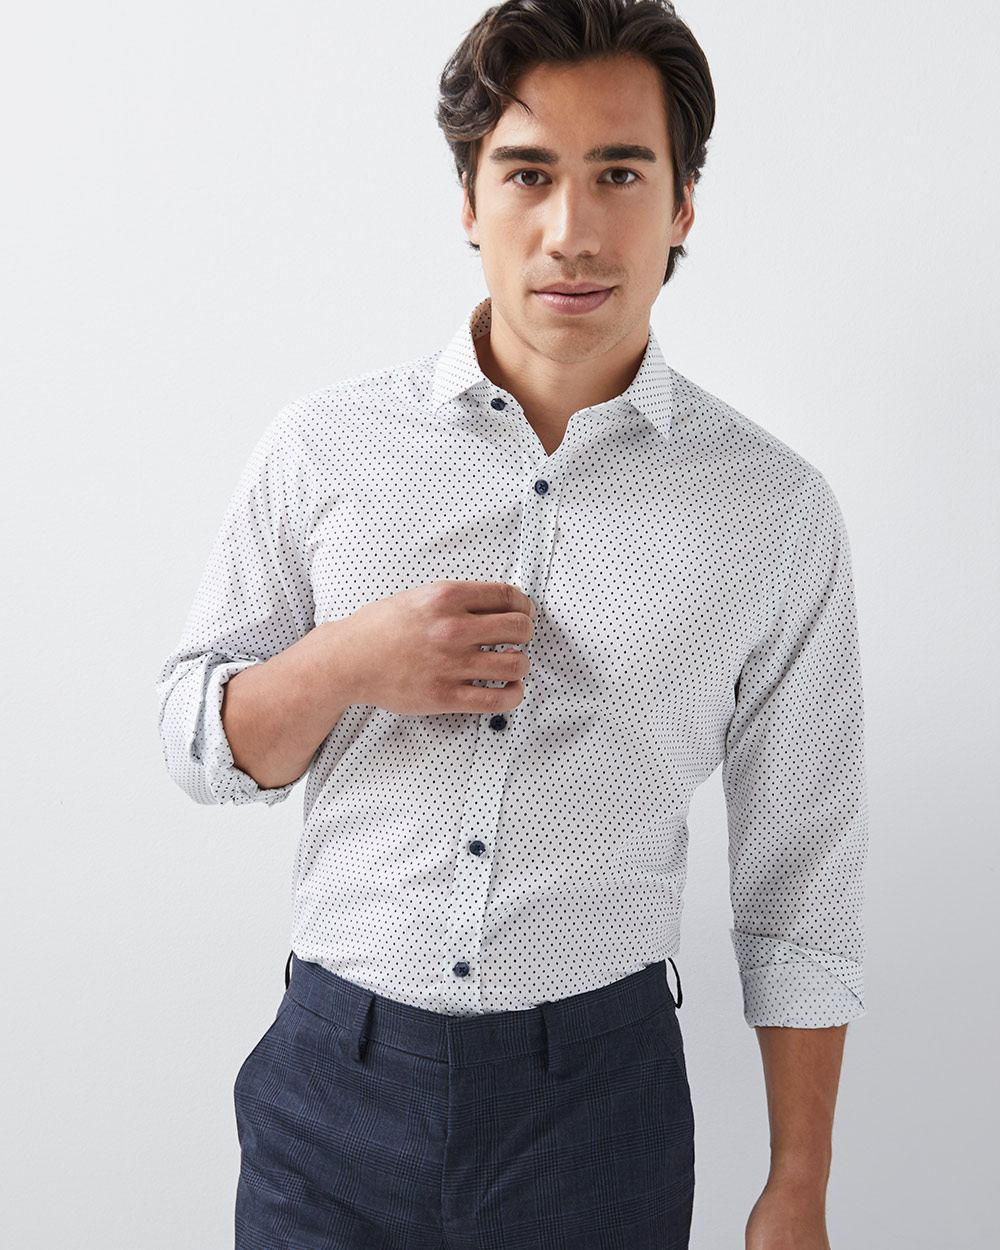 Athletic Fit Triangle Print Dress Shirt Rwco